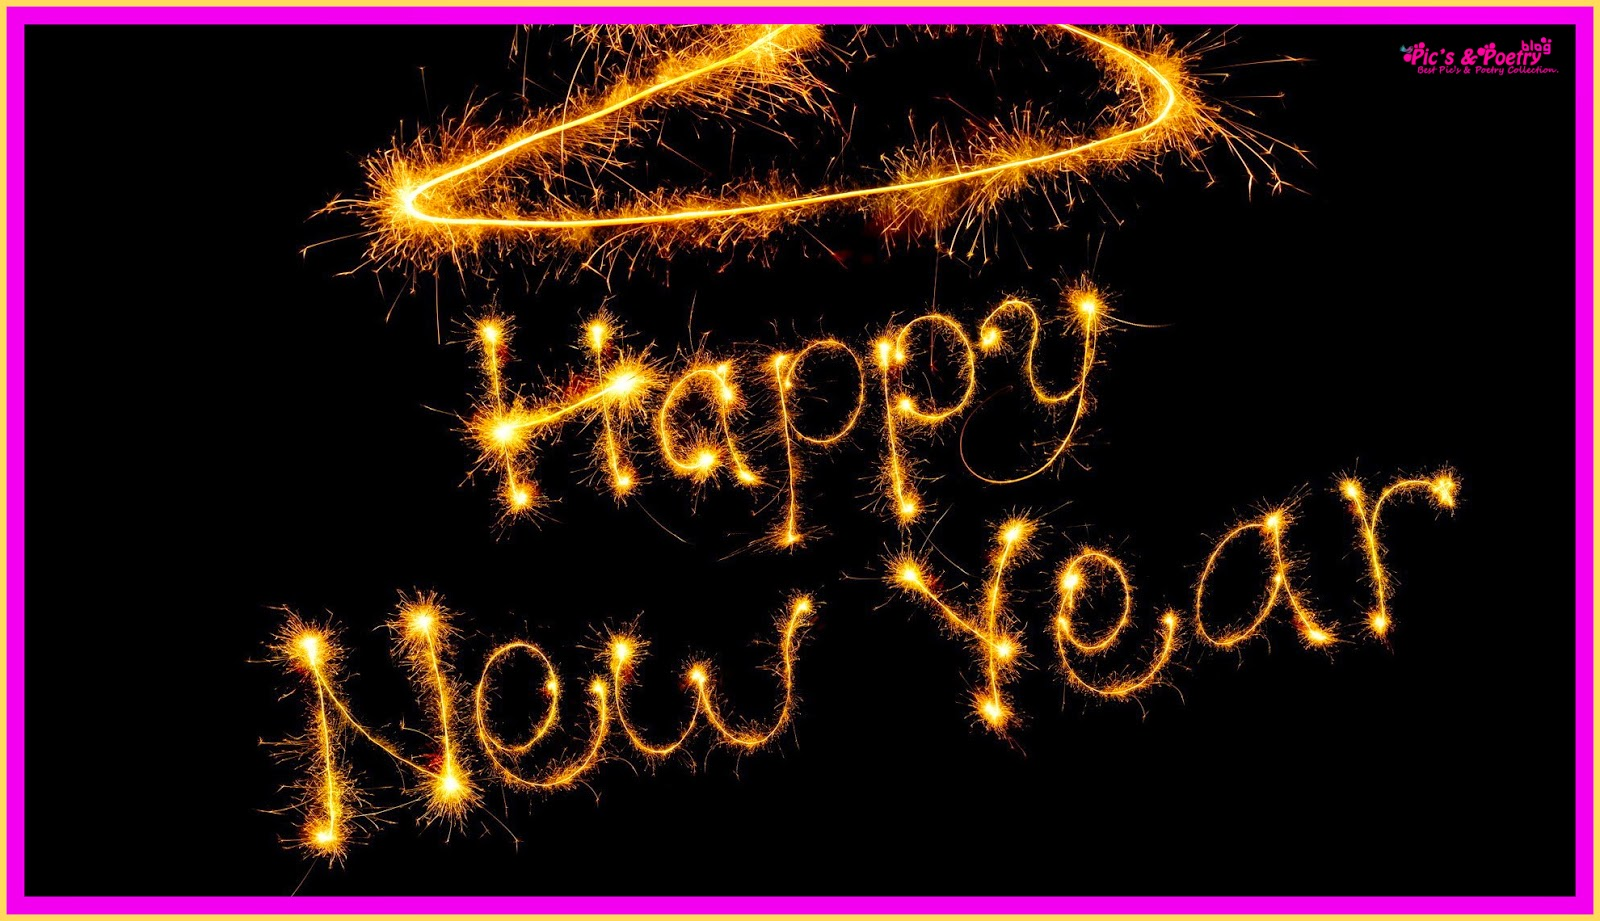 Happy new year 2015 greetings with images and quotes kristyandbryce Gallery